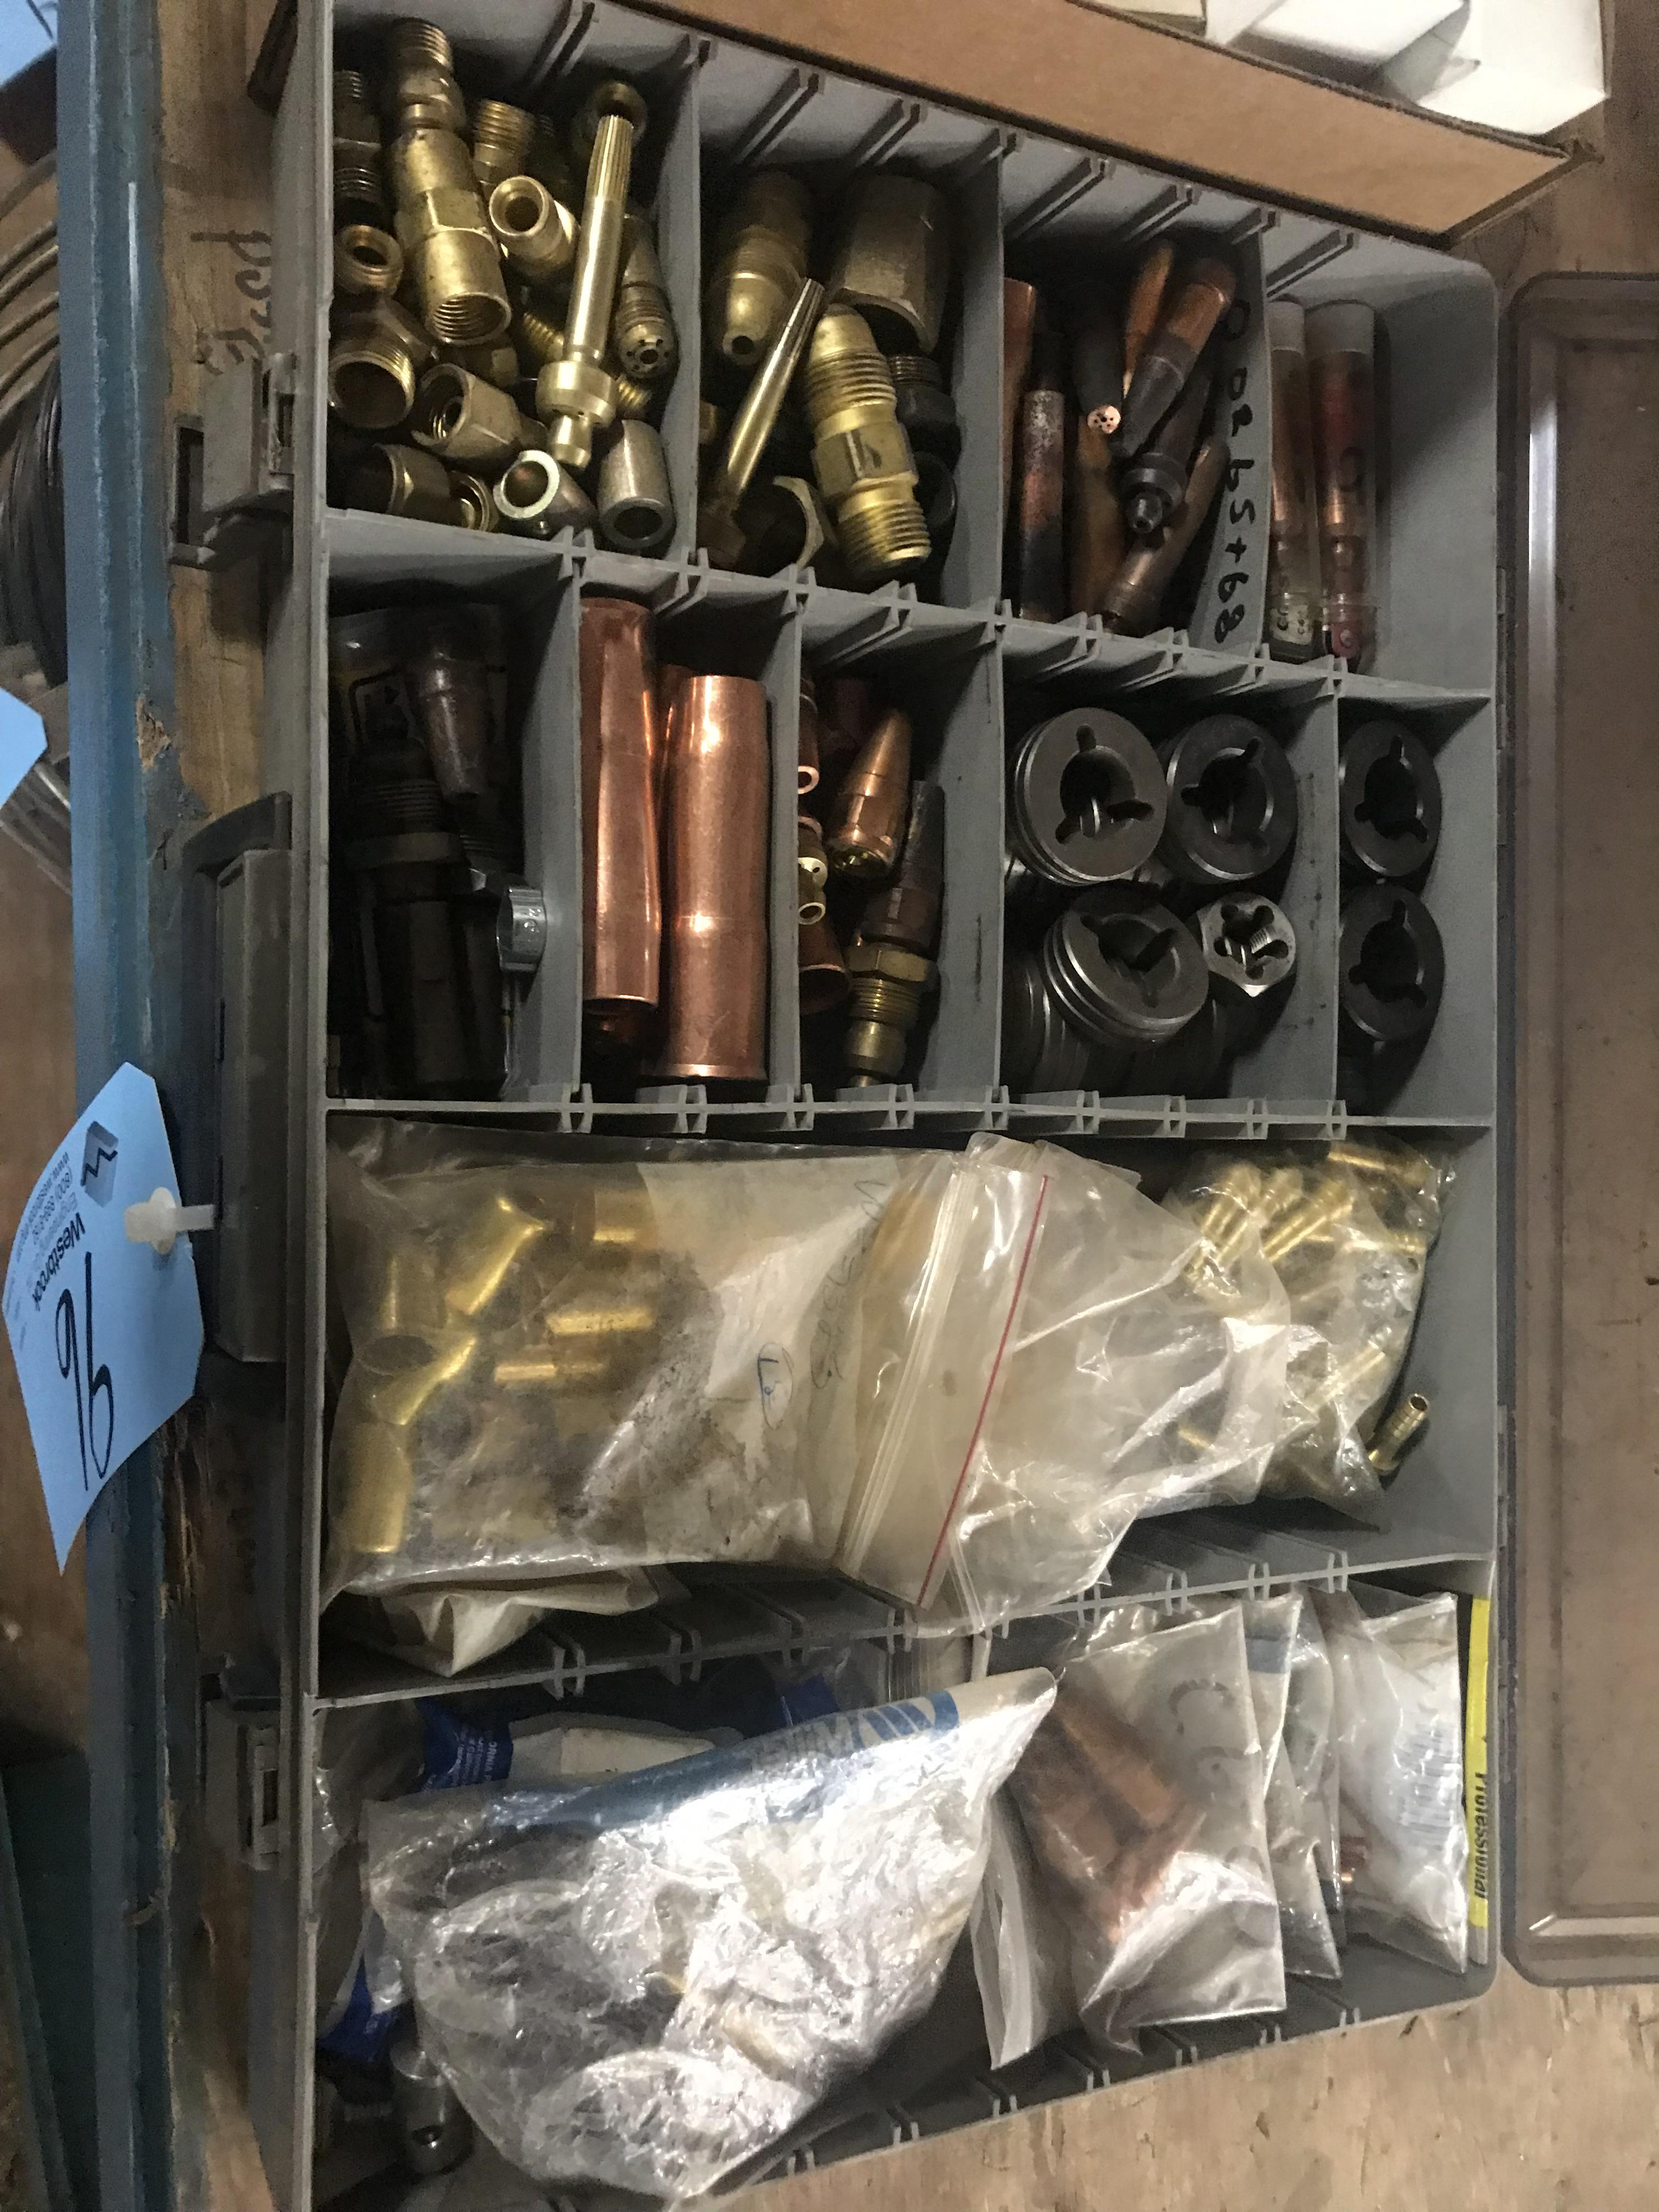 Lot-Mig/Tig Welding Tips and Accessories in (1) Service Kit and (1) Box - Image 3 of 3